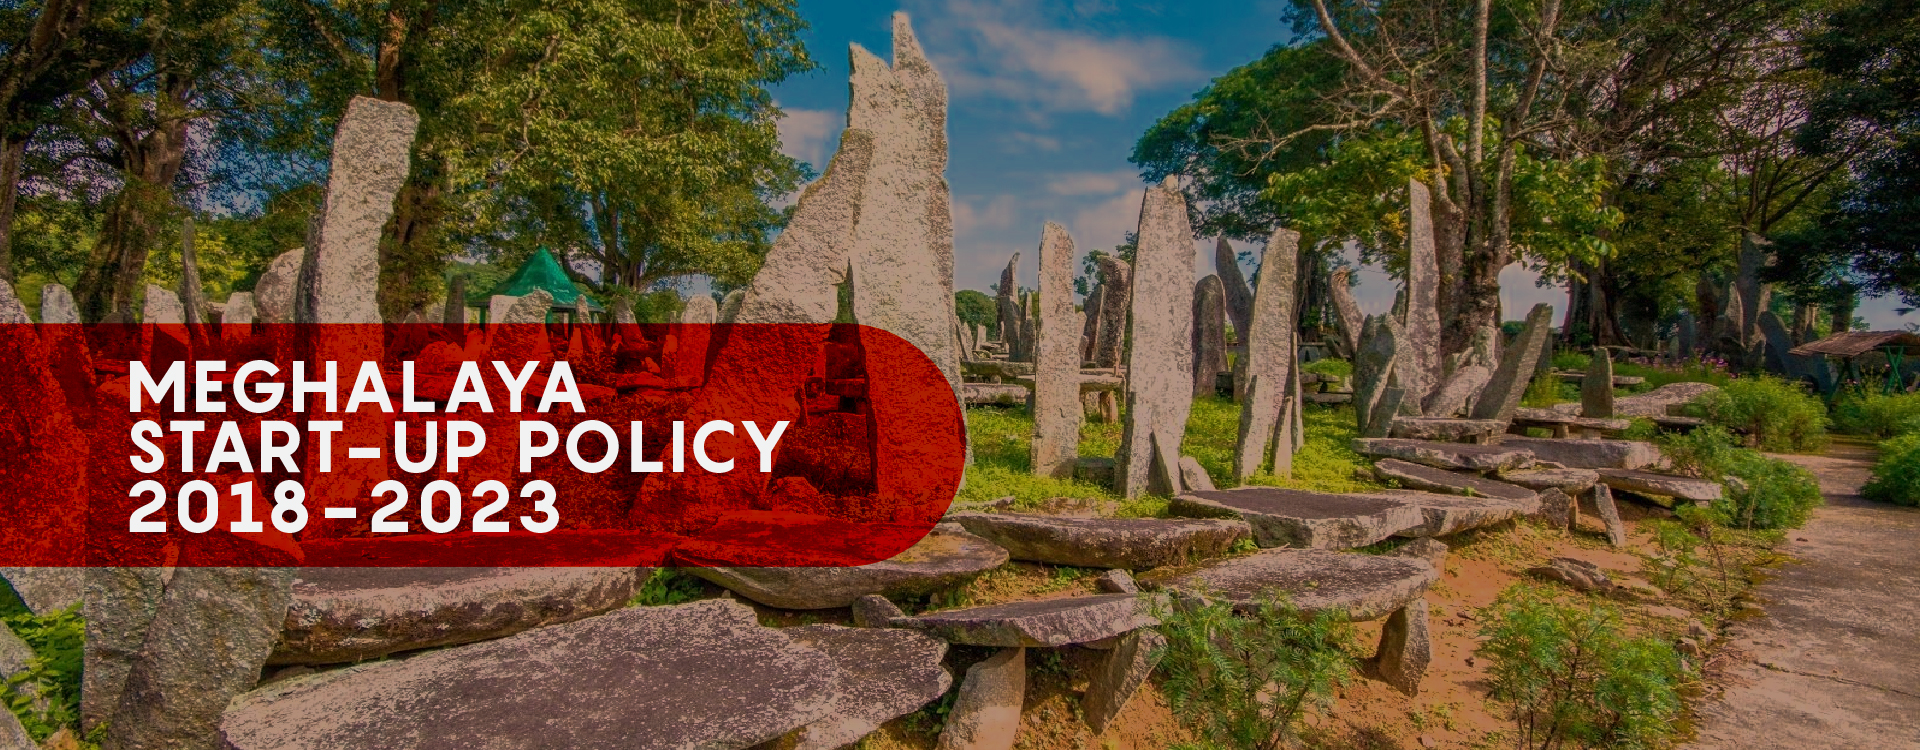 Meghalaya Start-up Policy Innovation and help for small businesses and startups